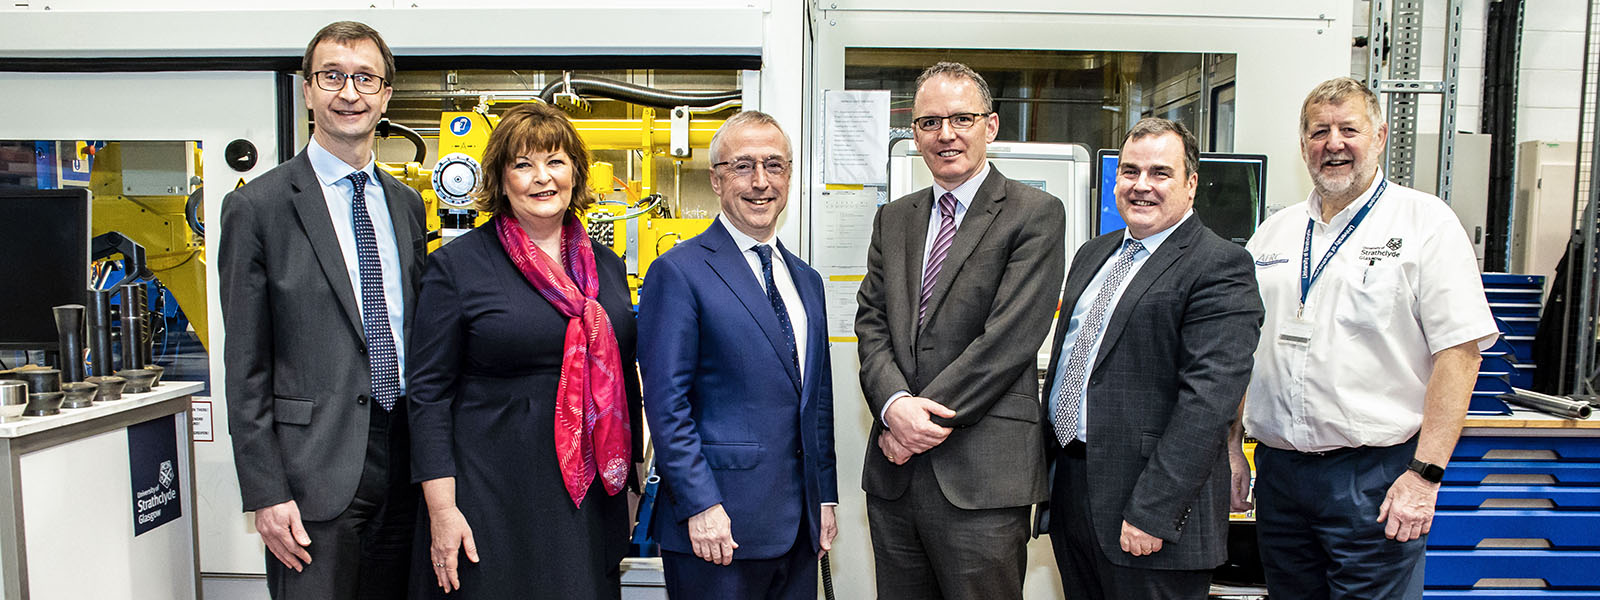 David Smith, National Opportunities Director at Scottish Enterprise, Fiona Hyslop, Economy Secretary, Sir Martin Donnelly, President of Boeing Europe, Adrian Gillespie,Chief Commercial Officer at Strathclyde, Iain Nicolson, Leader of Renfrewshire Council, Keith Ridgway, Executive Chair of Advanced Forming Research Centre